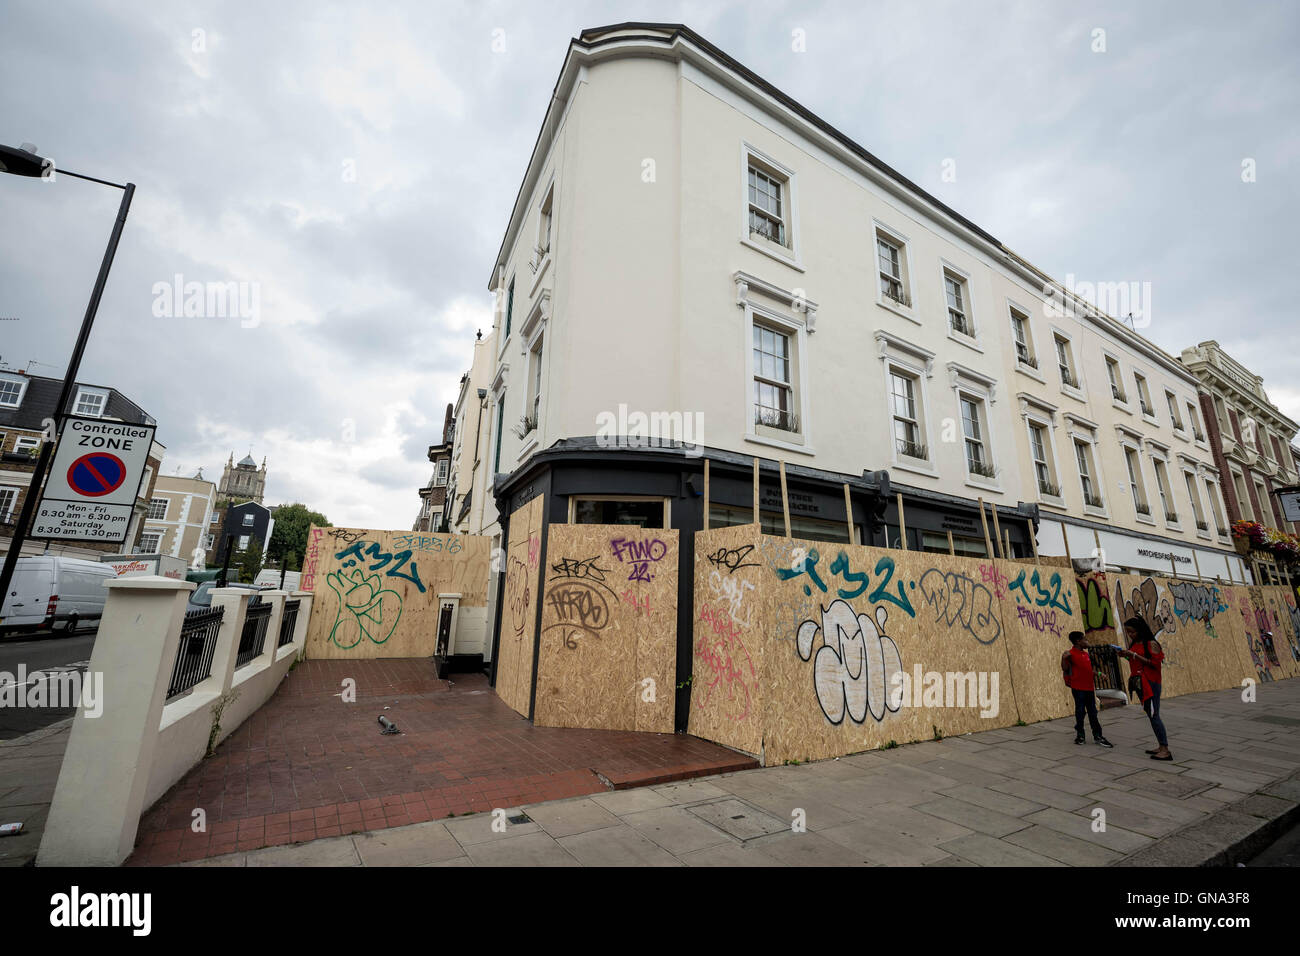 London, UK. 29th August 2016. Boarded-up local shops and residential property seen during Notting Hill Carnival - Stock Image